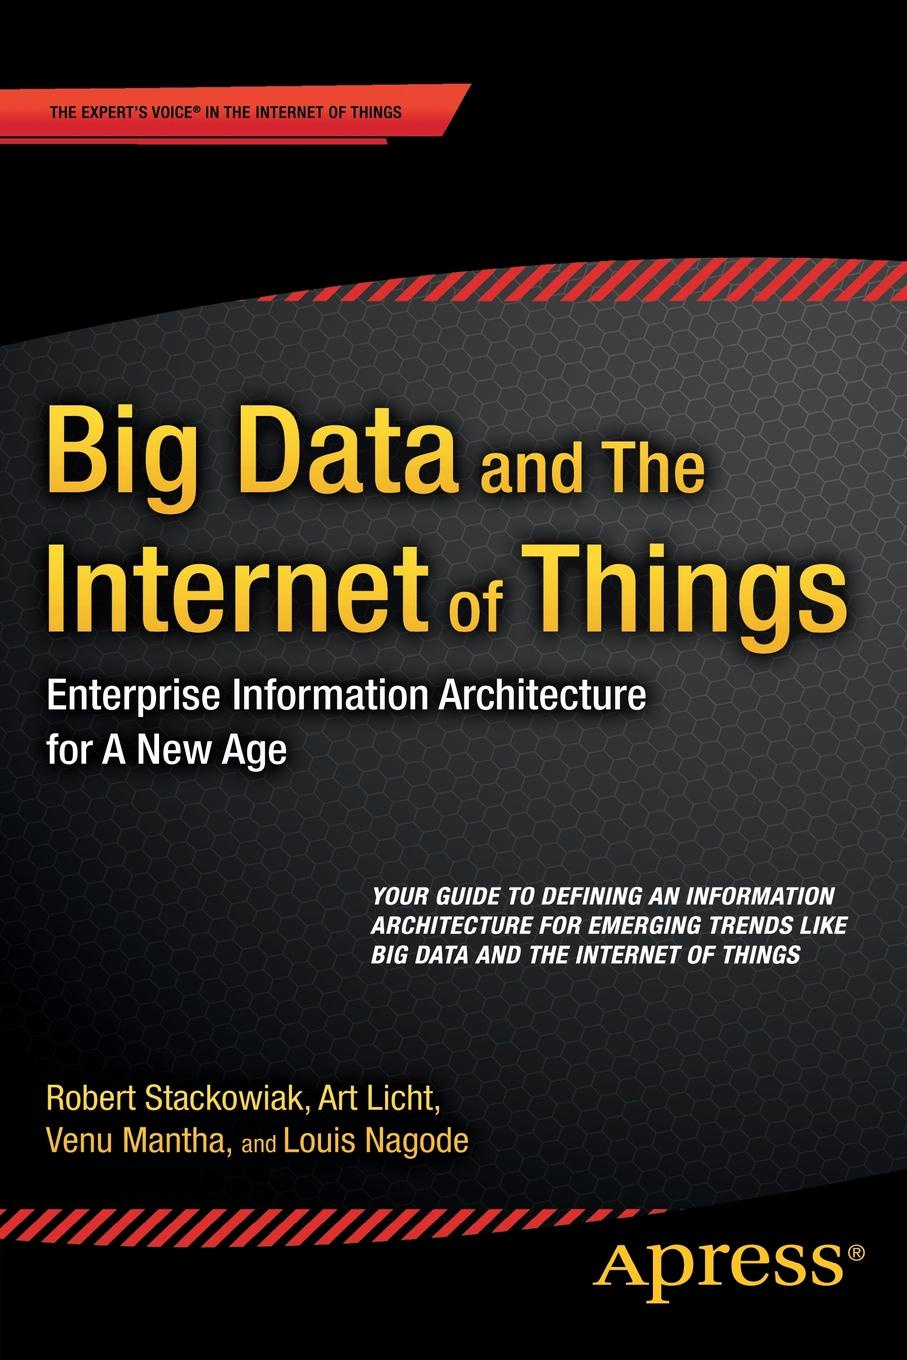 Robert Stackowiak, Art Licht, Venu Mantha Big Data and The Internet of Things. Enterprise Information Architecture for A New Age hwaiyu geng internet of things and data analytics handbook